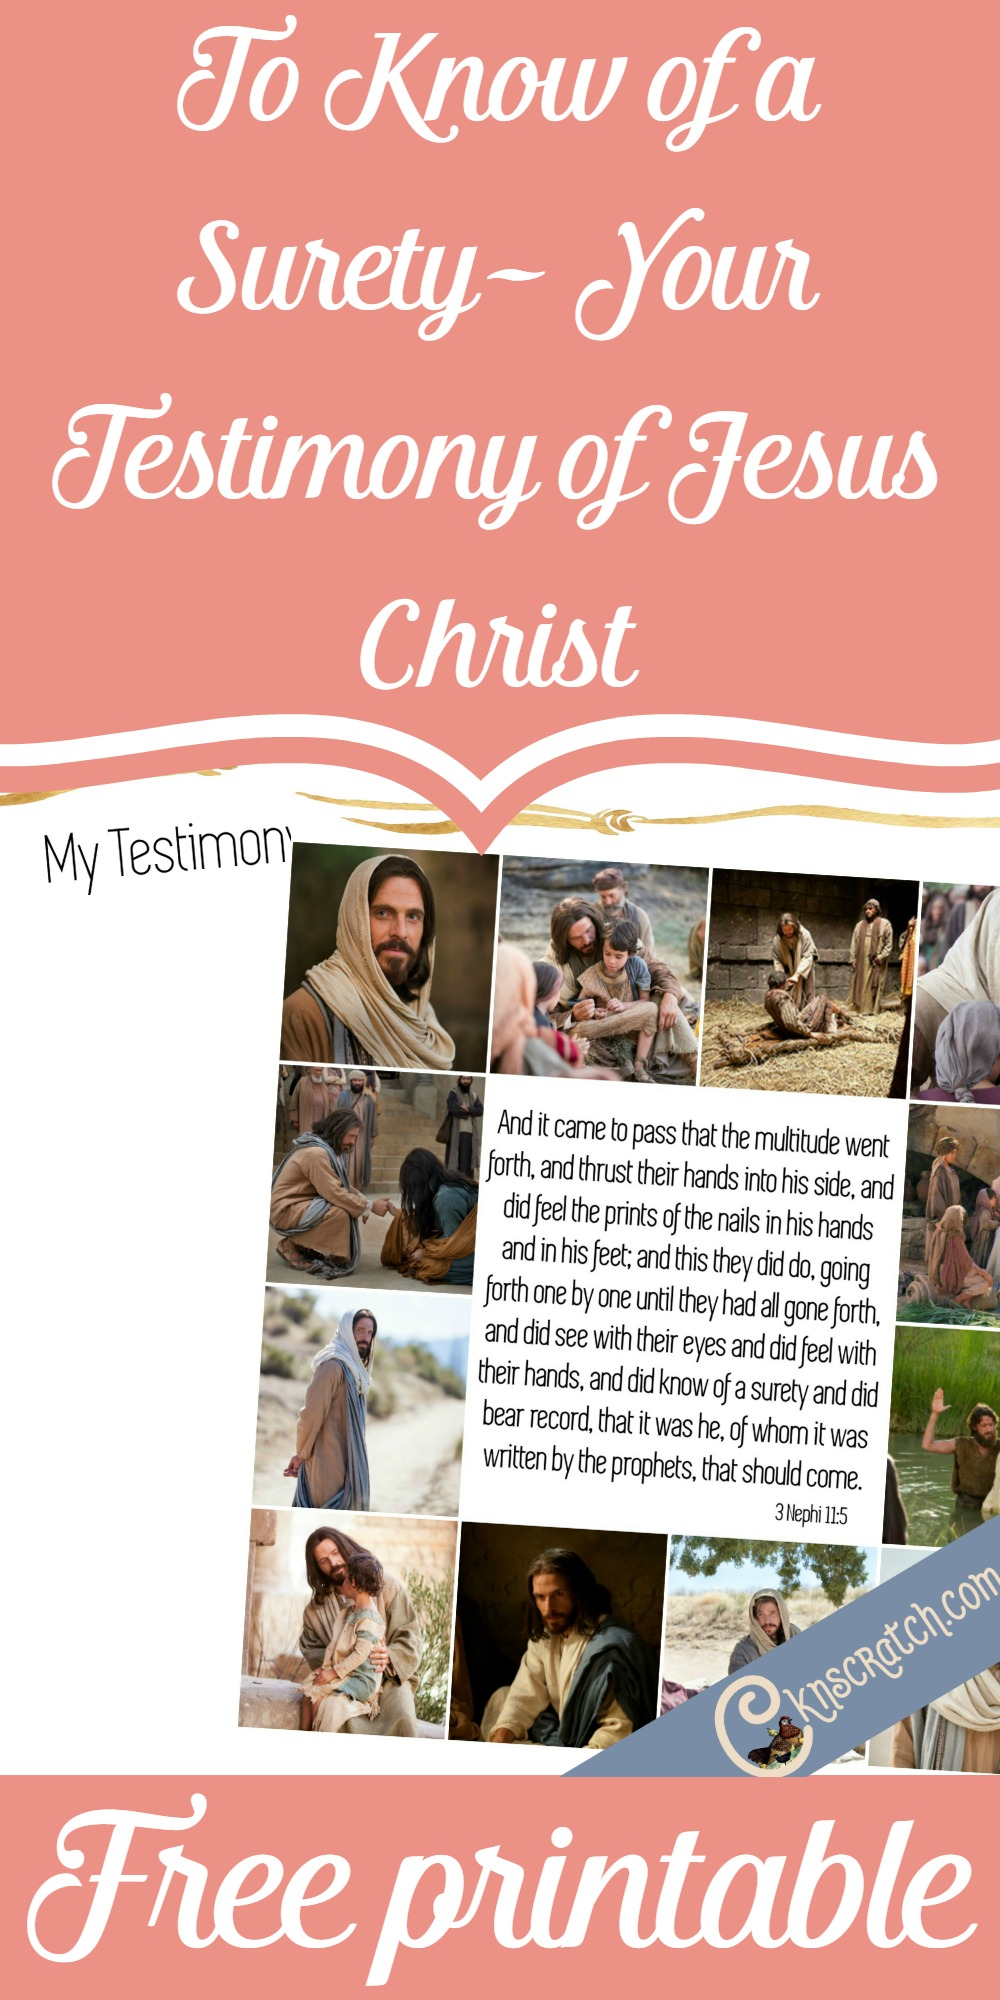 Free scripture printable for 3 Nephi 11:15- love this series of free scripture printables